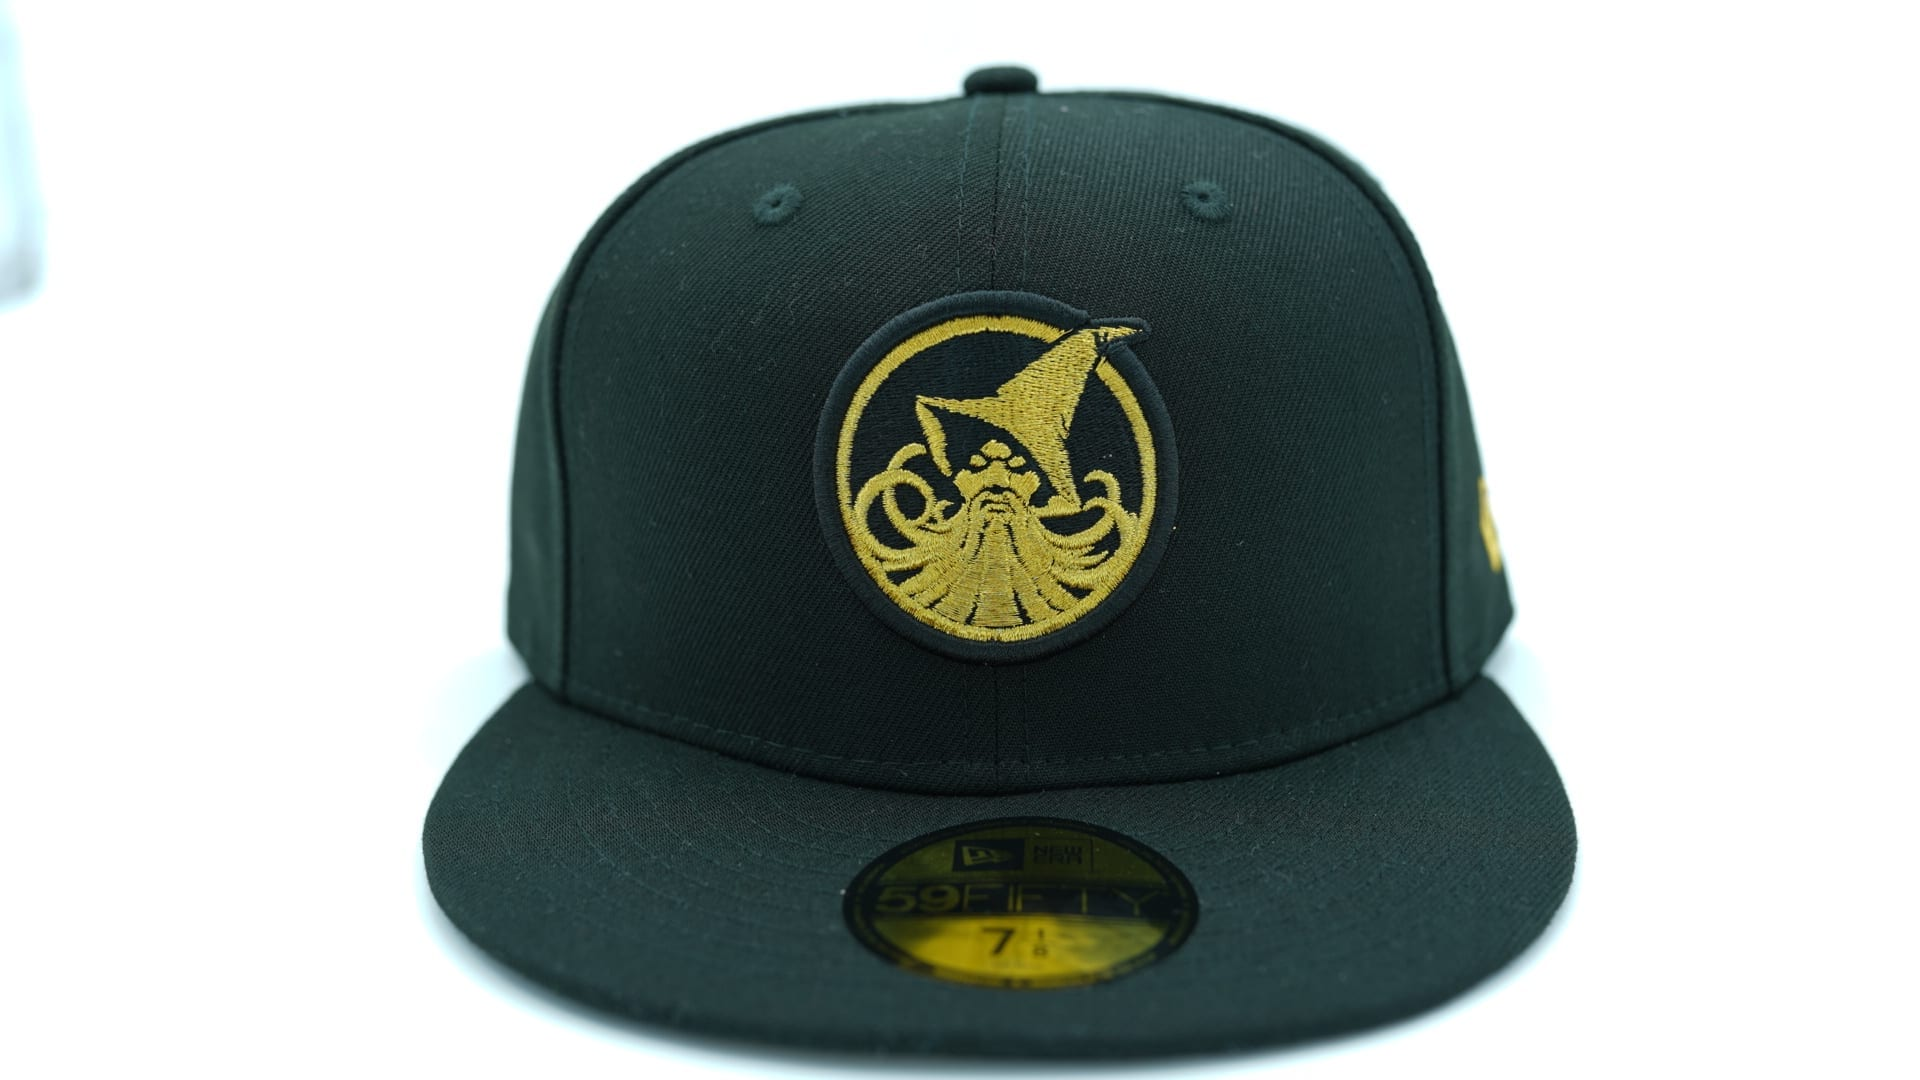 Wilmington Blue Rocks Home 59Fifty Fitted Game Cap by NEW ERA x MiLB